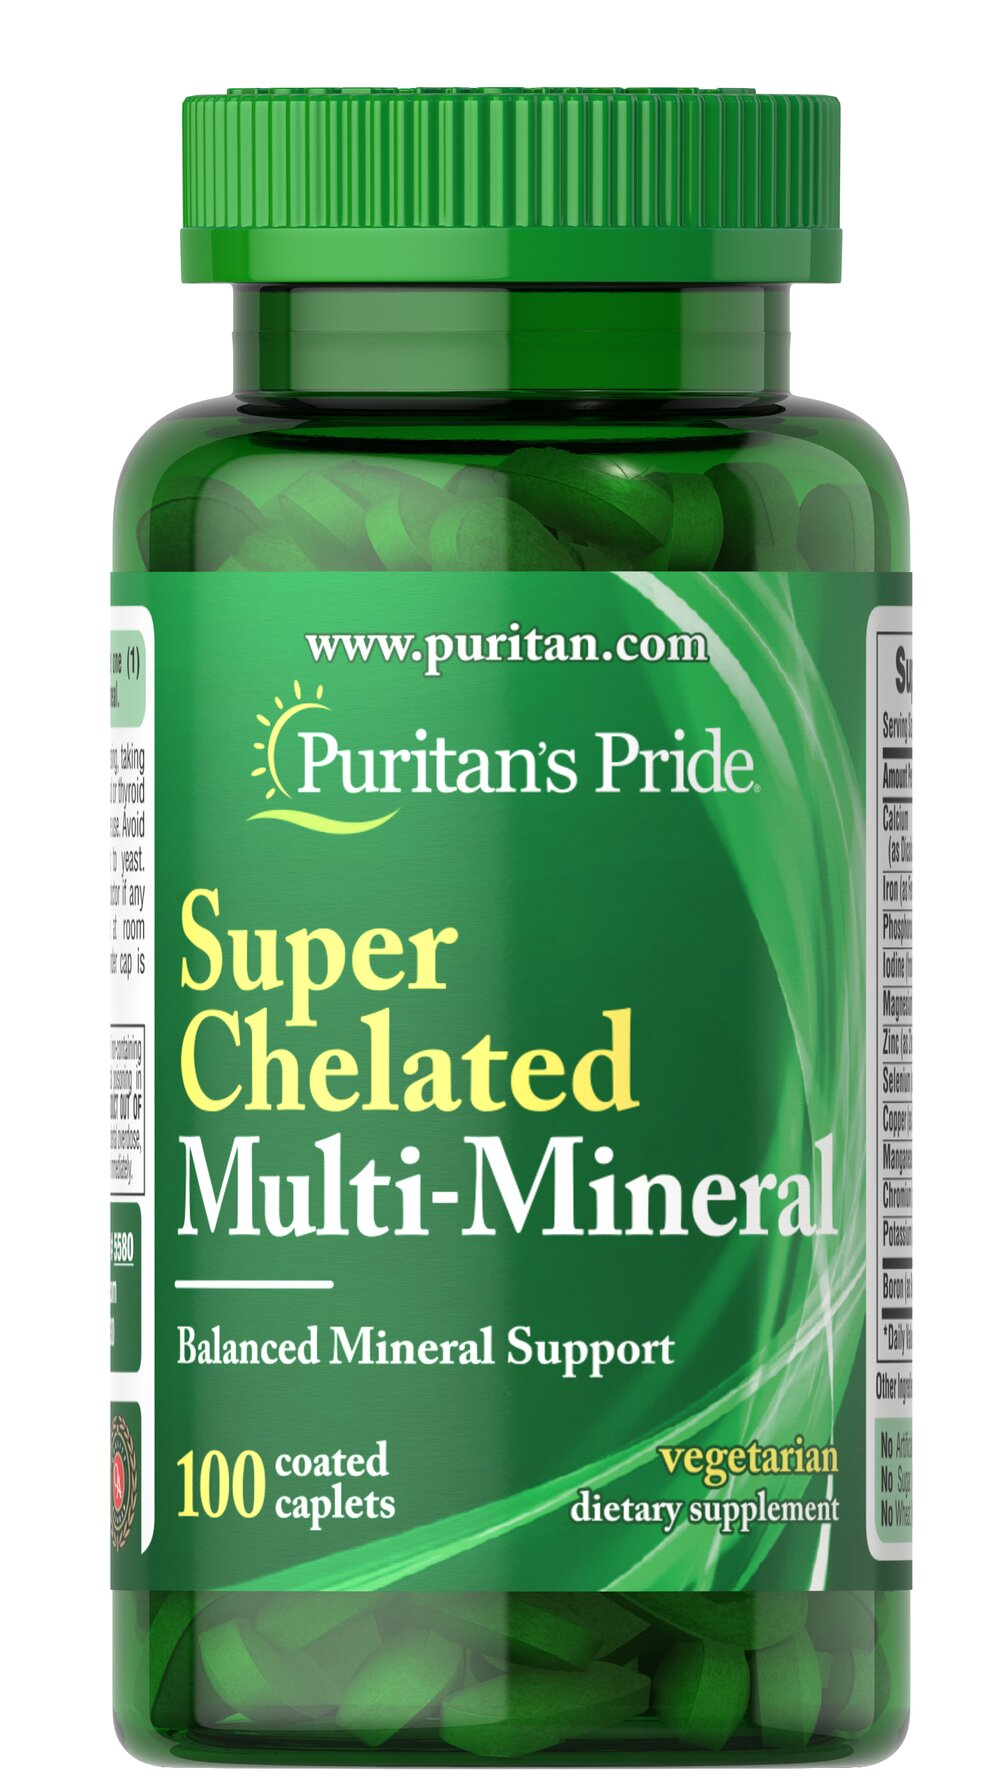 Super Chelated Multi Mineral <p>In Super Chelated Multi-Mineral, we combine over 10 major and trace minerals into a comprehensive mineral blend. Super Chelated Multi-Mineral contains a nutritional treasure chest including Calcium and Magnesium, which play essential roles in maintaining proper bone mineralization, Zinc, which helps support immune function and Boron, which plays a role in bone metabolism.**</p> 100 Coated Caplets  $15.39